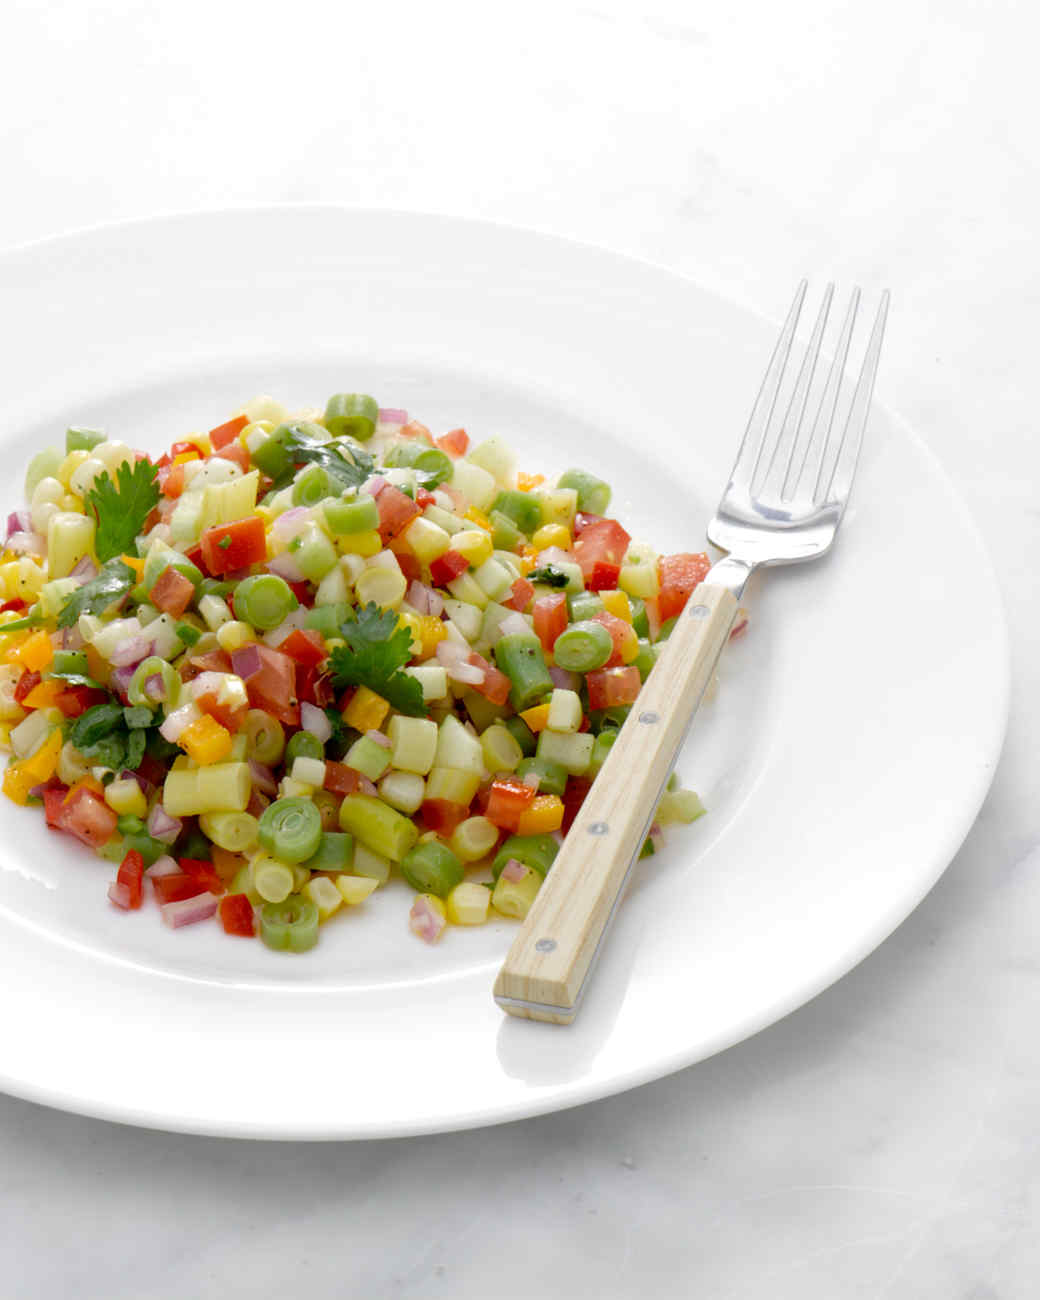 martha-stewart-cooking-school-chopped-vegetable-salad-am-274-d110633-20130923.jpg